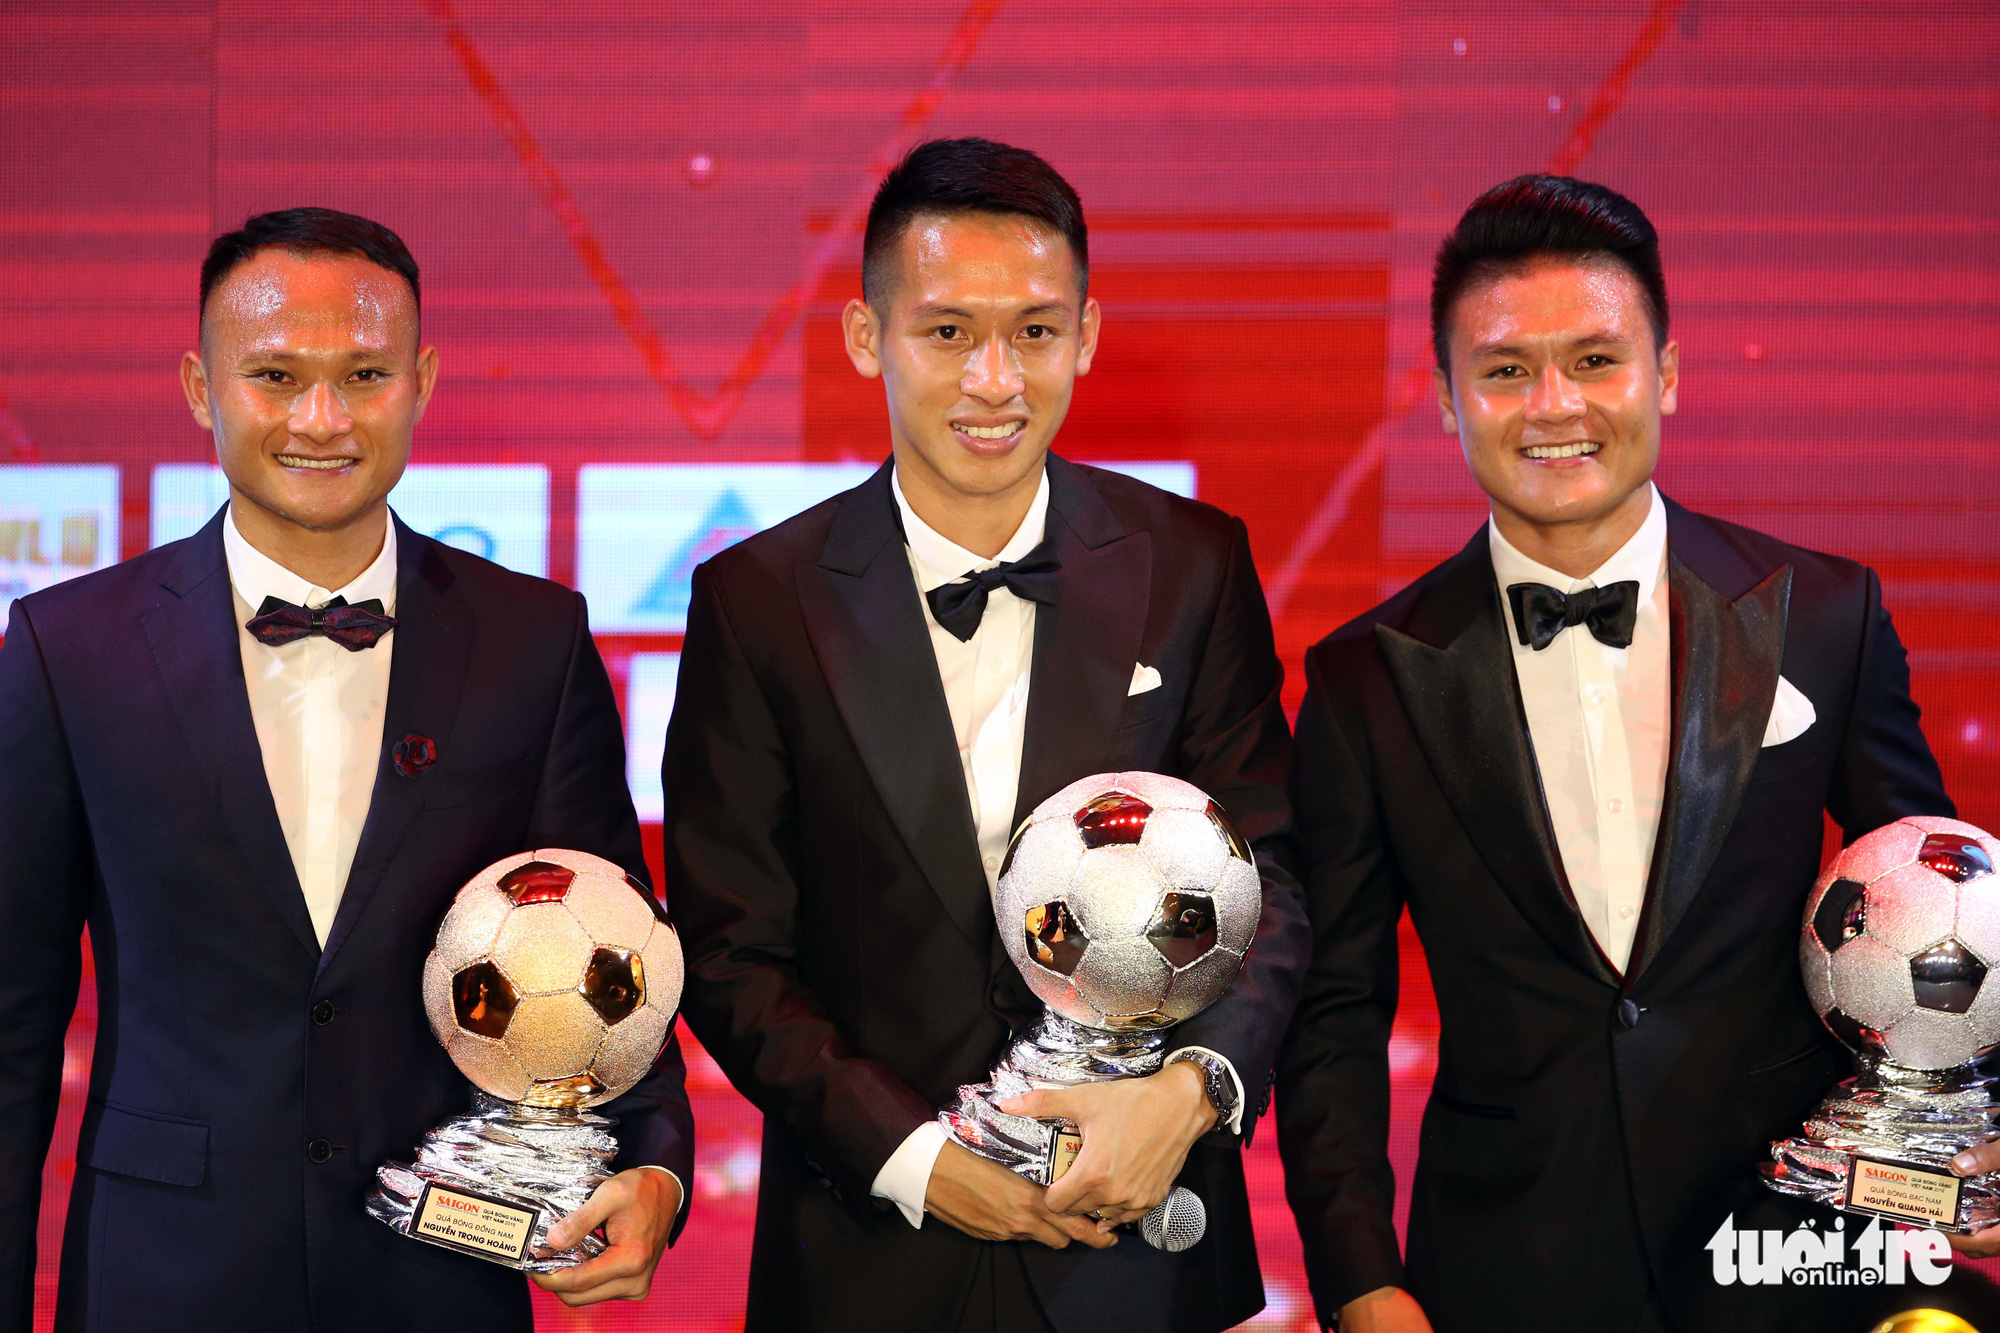 Do Hung Dung (center), Nguyen Quang Hai (right) and Nguyen Trong Hoang (left), winners of the 2019 Vietnam Golden Ball, Silver Ball, and Bronze Ball, respectively, react after receiving the individual football award at a ceremony held by Sai Gon Giai Phong (Liberated Saigon) newspaper in Ho Chi Minh City, Vietnam, May 26, 2020. Photo: N.K. / Tuoi Tre